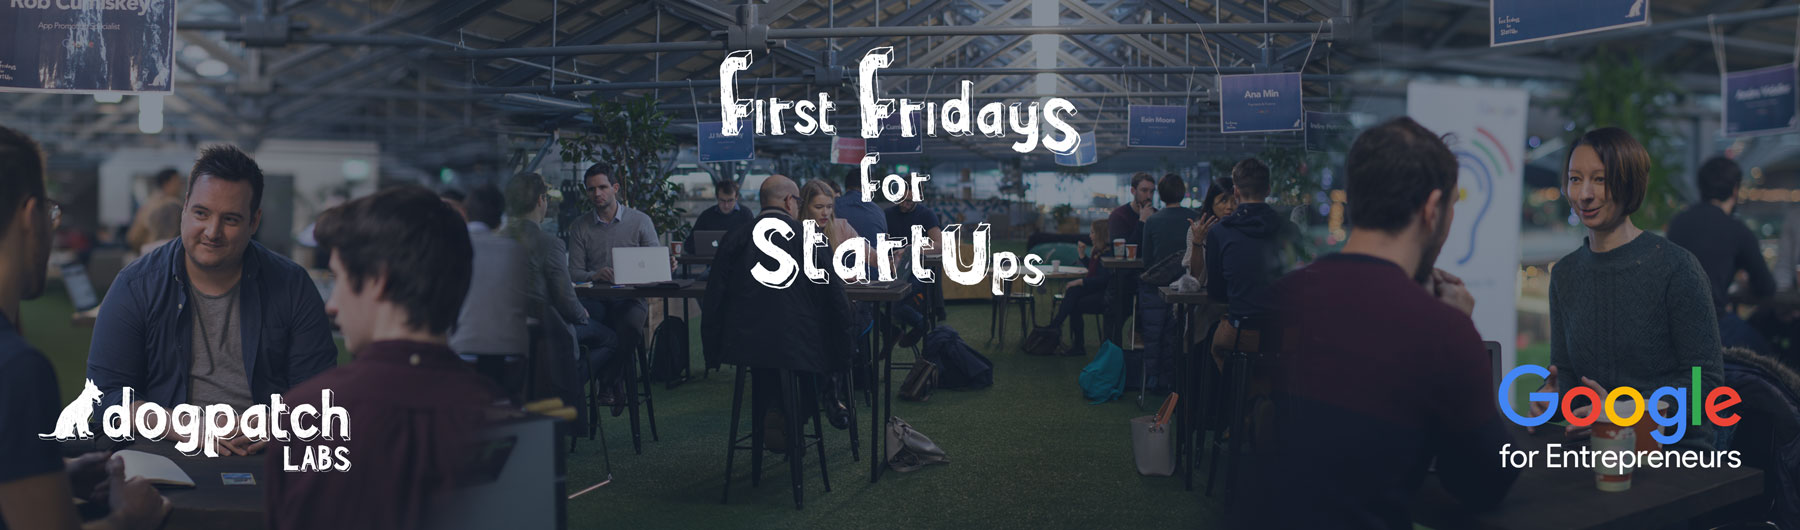 First Fridays for Startups - Workshop - 2nd June 2017